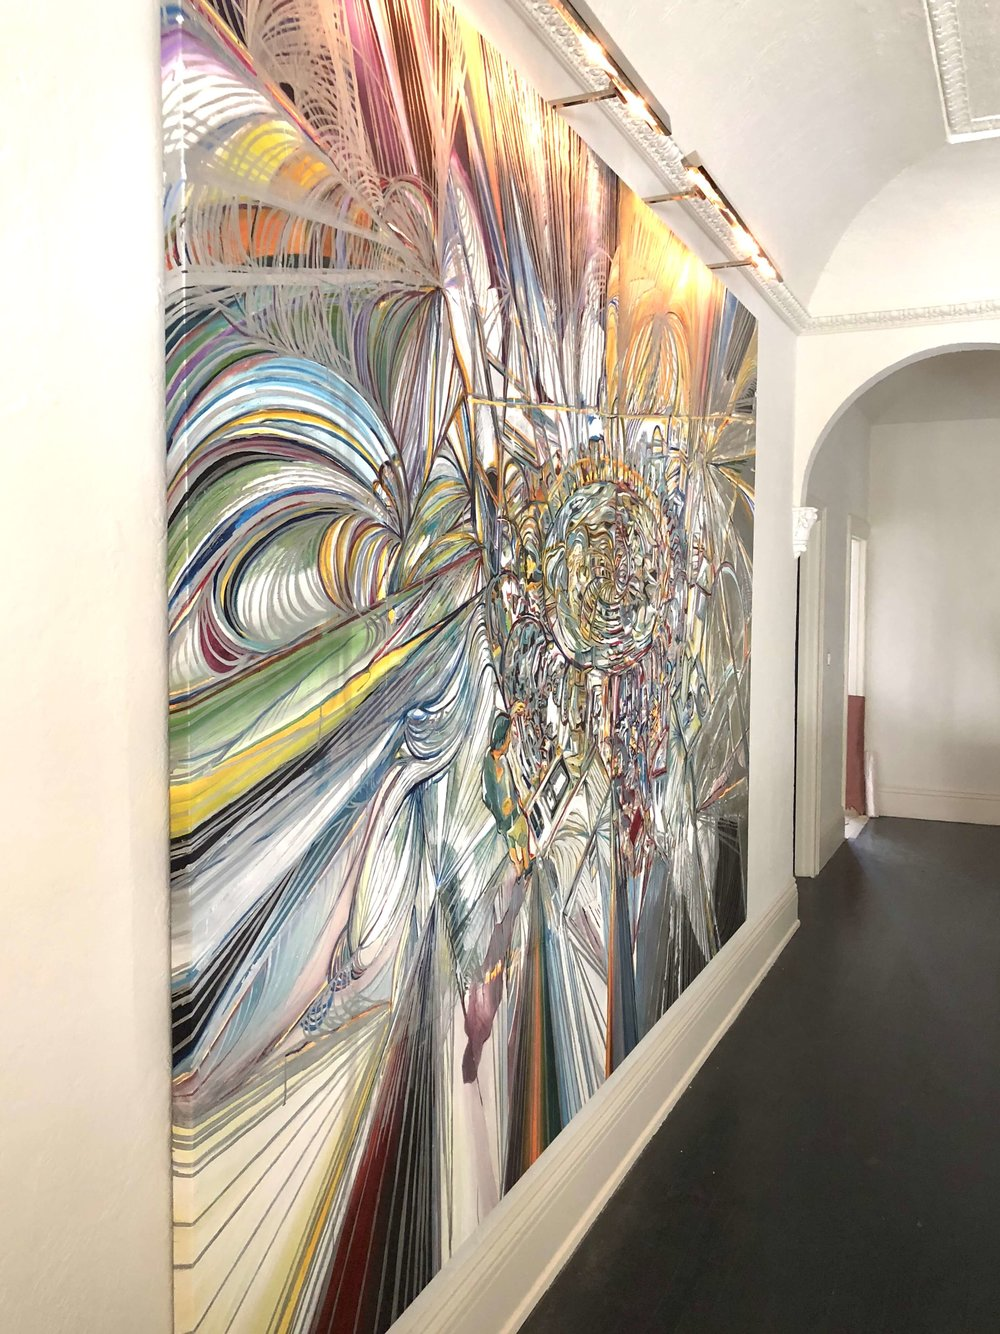 Large, oversized art by Adam Berg in upstairs hallway at Pasadena Showcase House